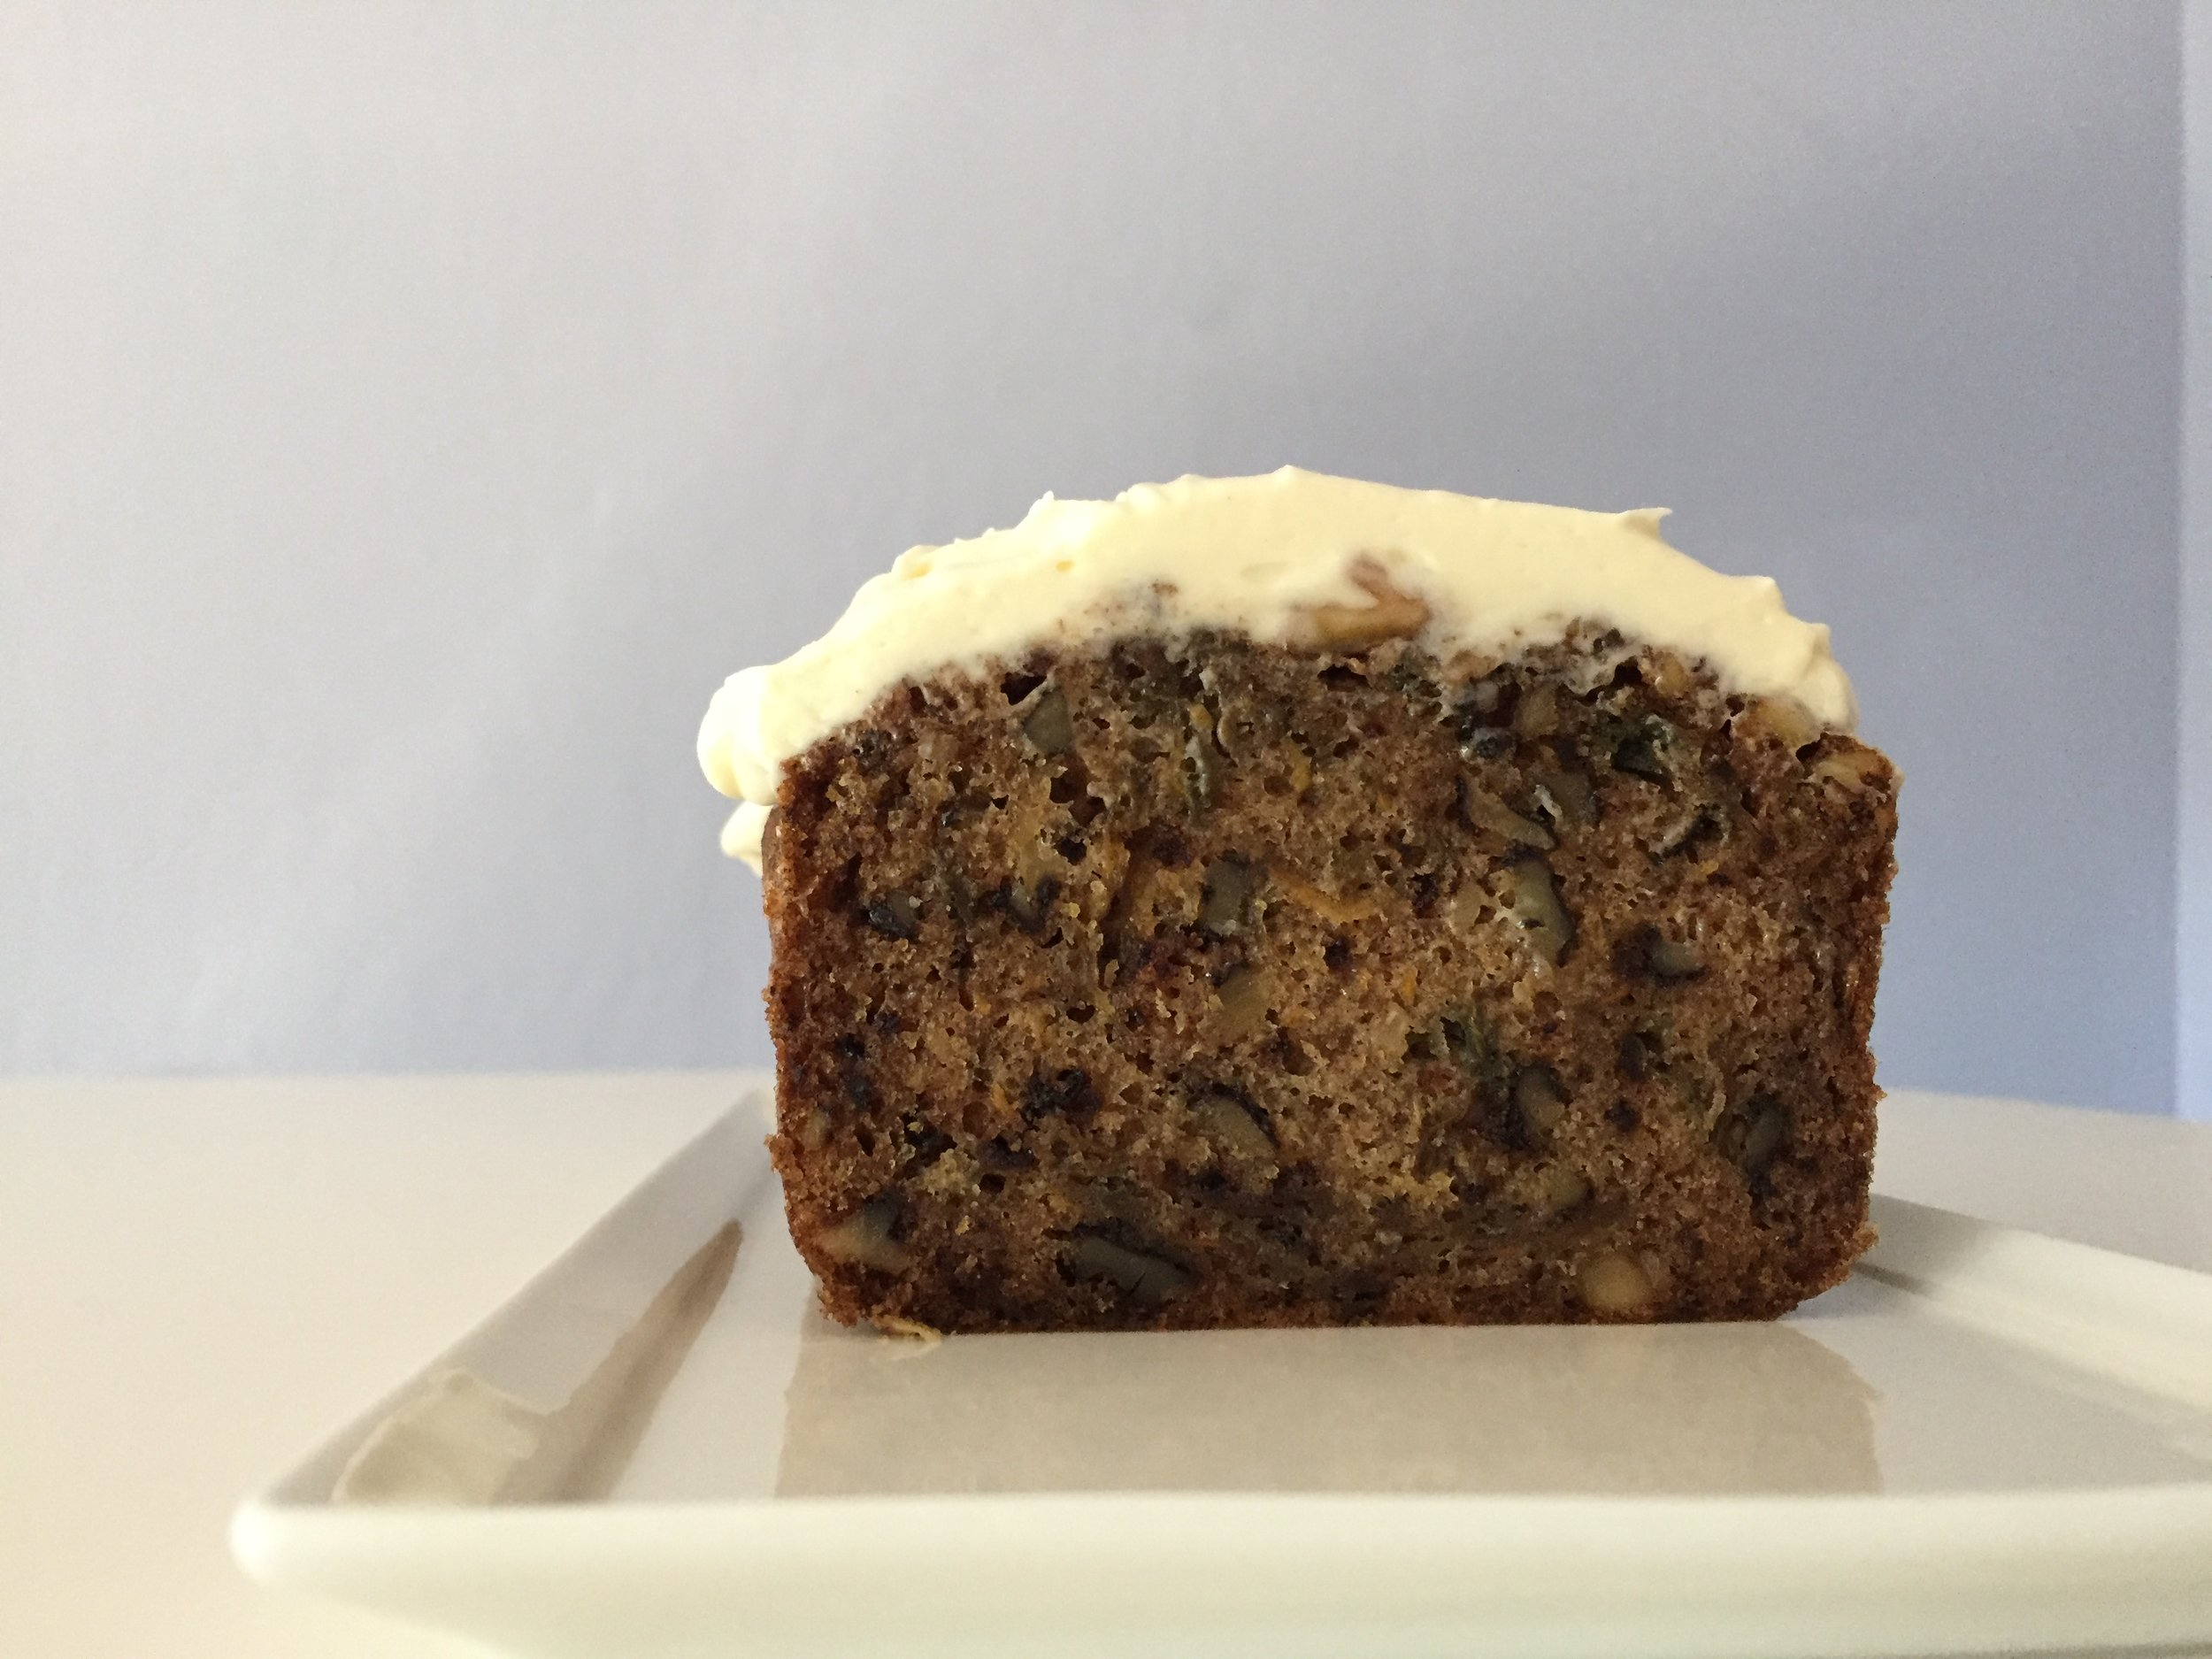 Interior of the frosted carrot cake with purple carrots